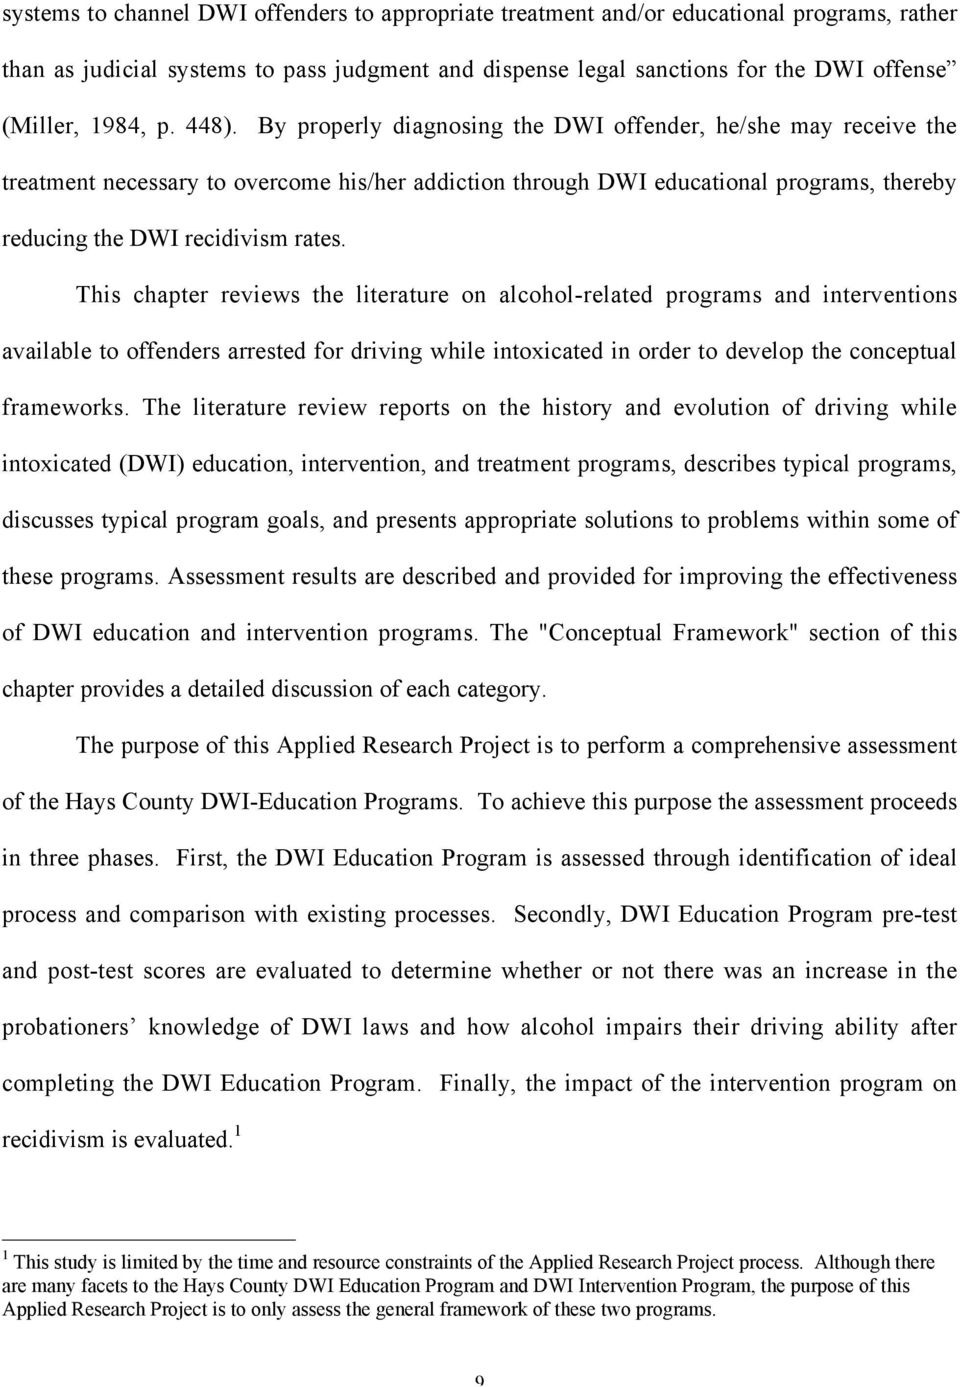 This chapter reviews the literature on alcohol-related programs and interventions available to offenders arrested for driving while intoxicated in order to develop the conceptual frameworks.